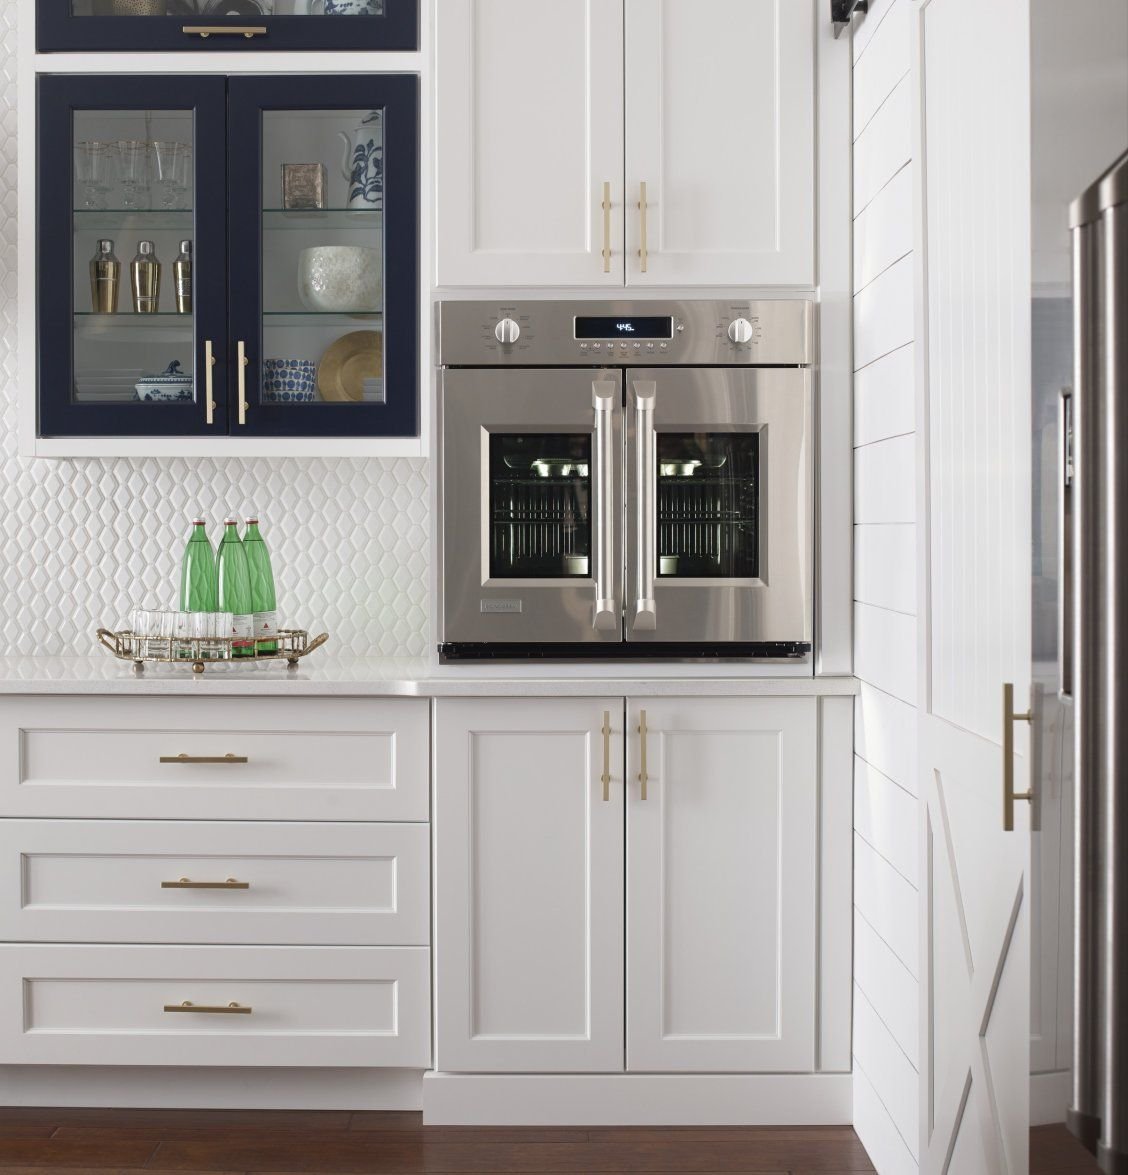 Inspired By Commercial Kitchen Designs The Precision Engineered Chain Drive Mechanism Allows For O Luxury Kitchen Design Kitchen Design Kitchen Designs Photos